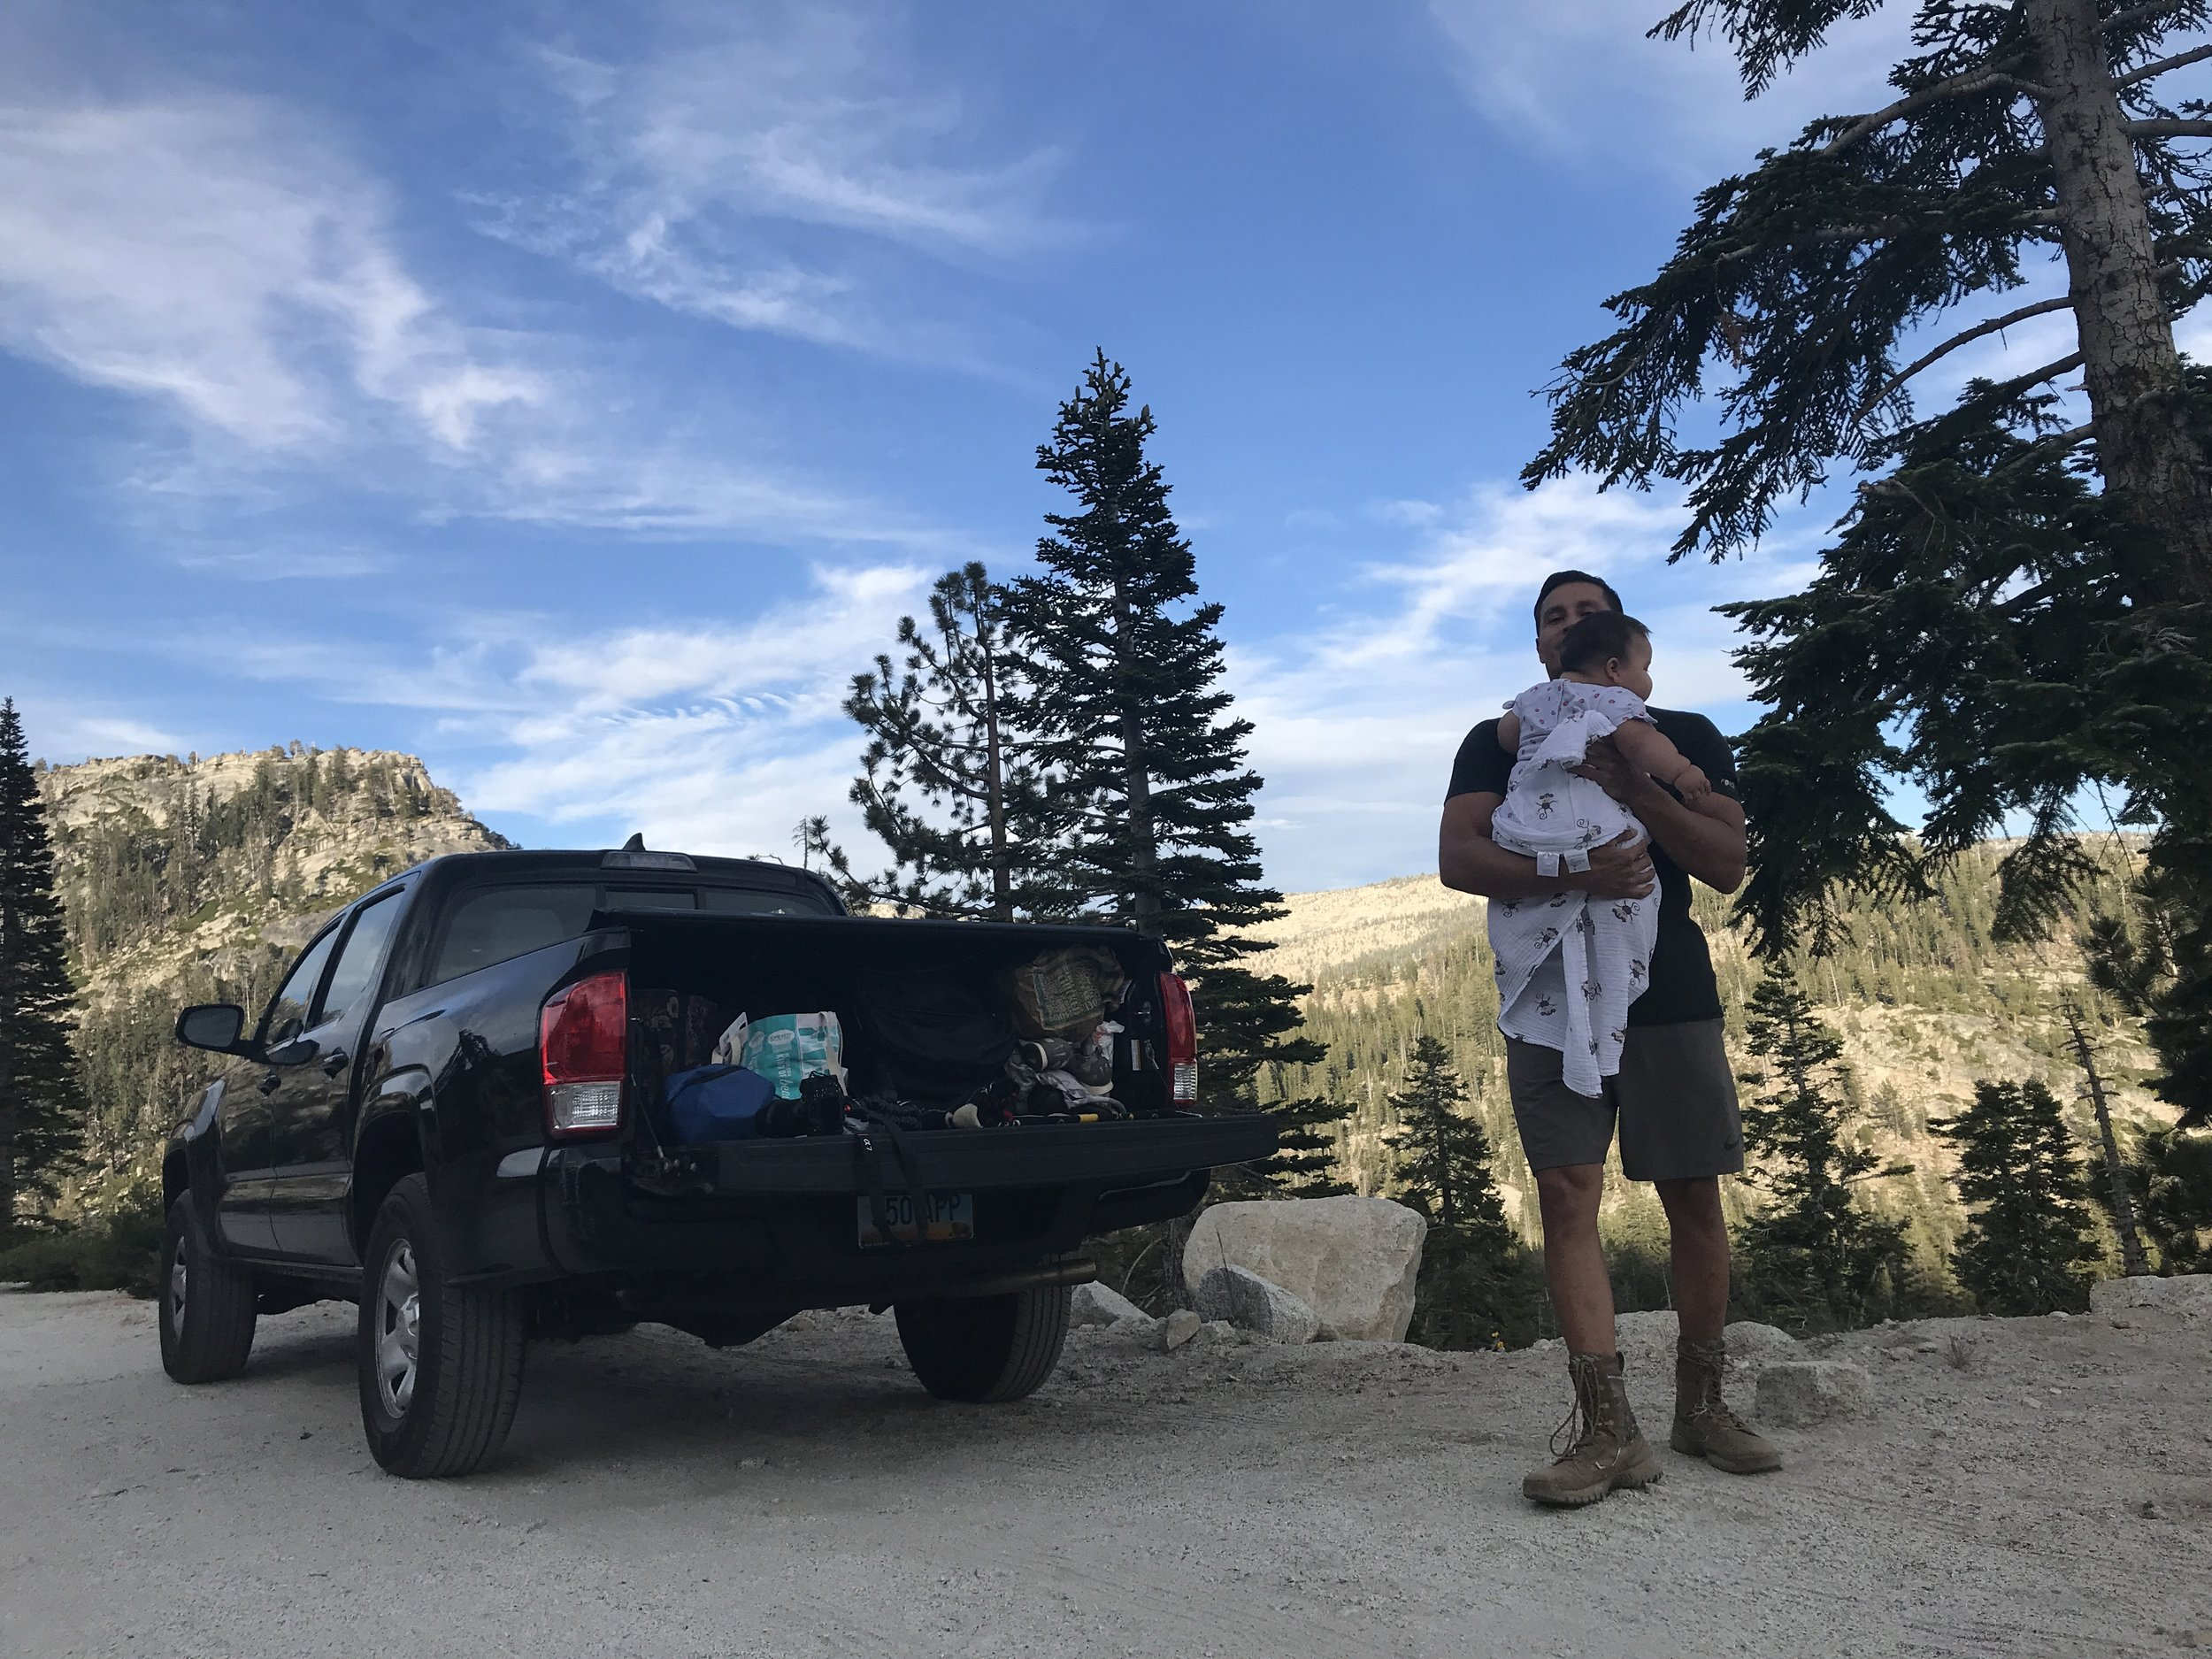 Thosh holding baby after a tailgate diaper change overlooking an epic mountainside view in Yosemite.